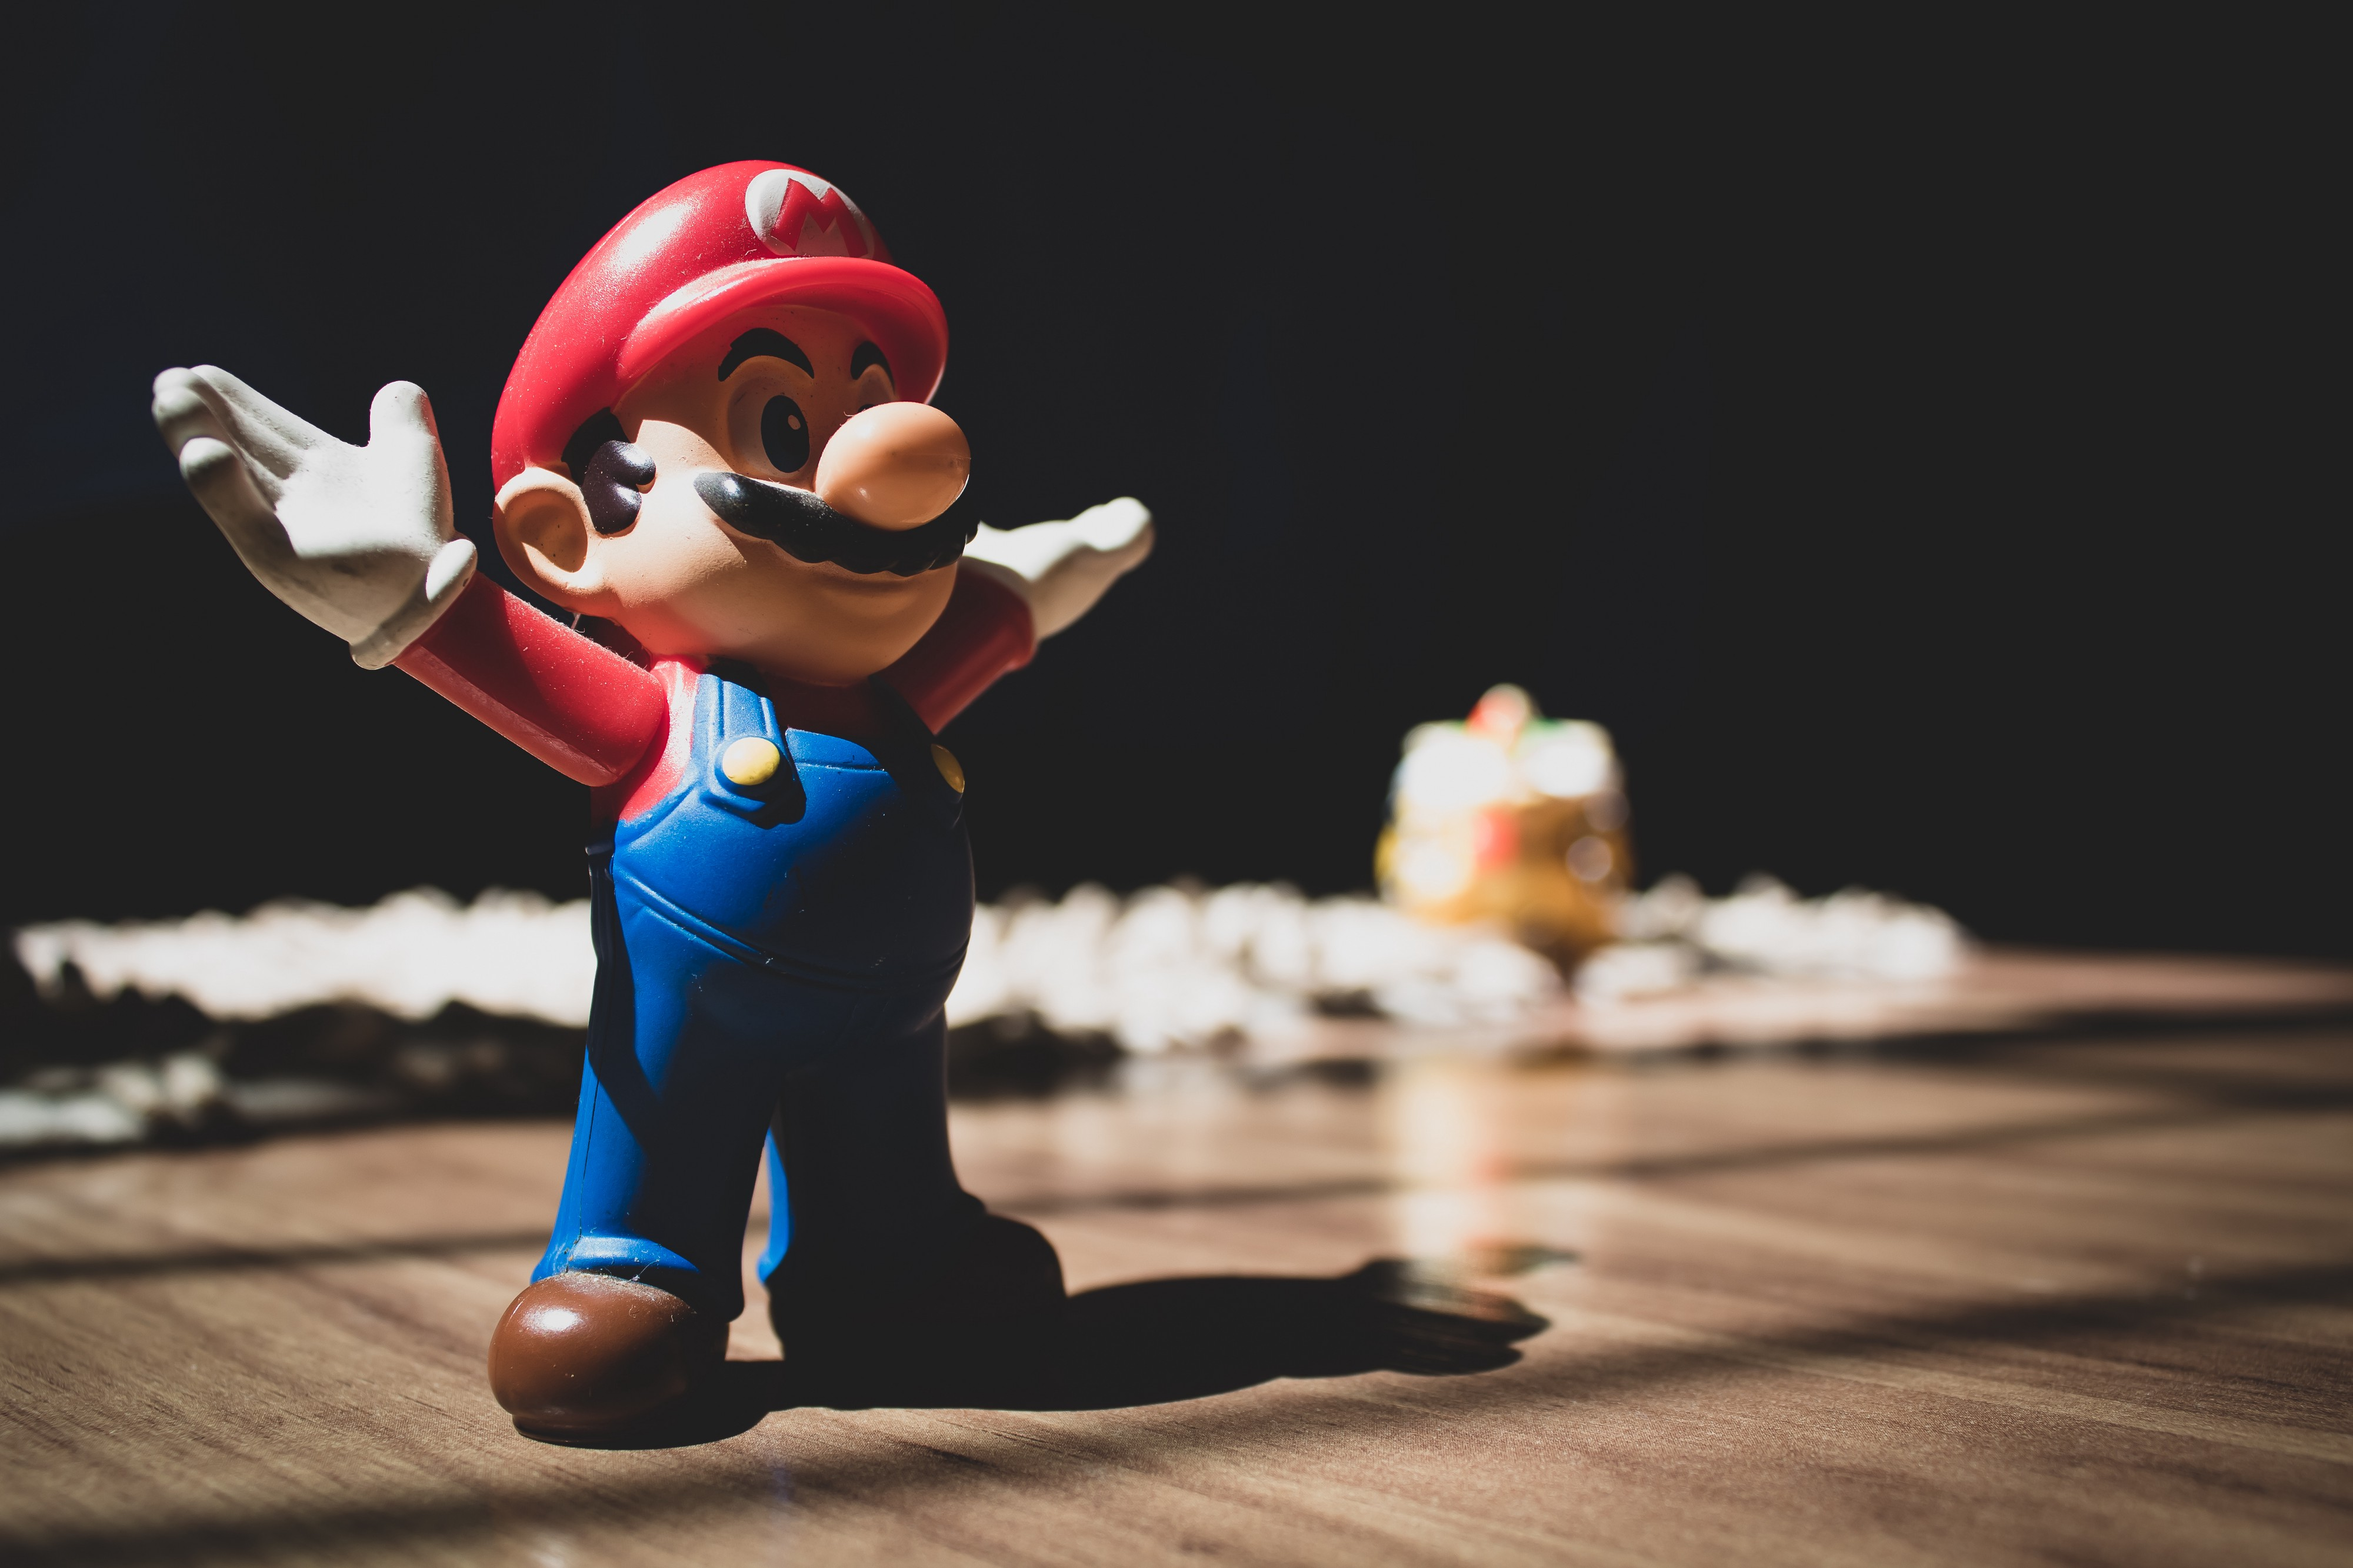 Small figurine of Mario with arms extended out, sitting on a table